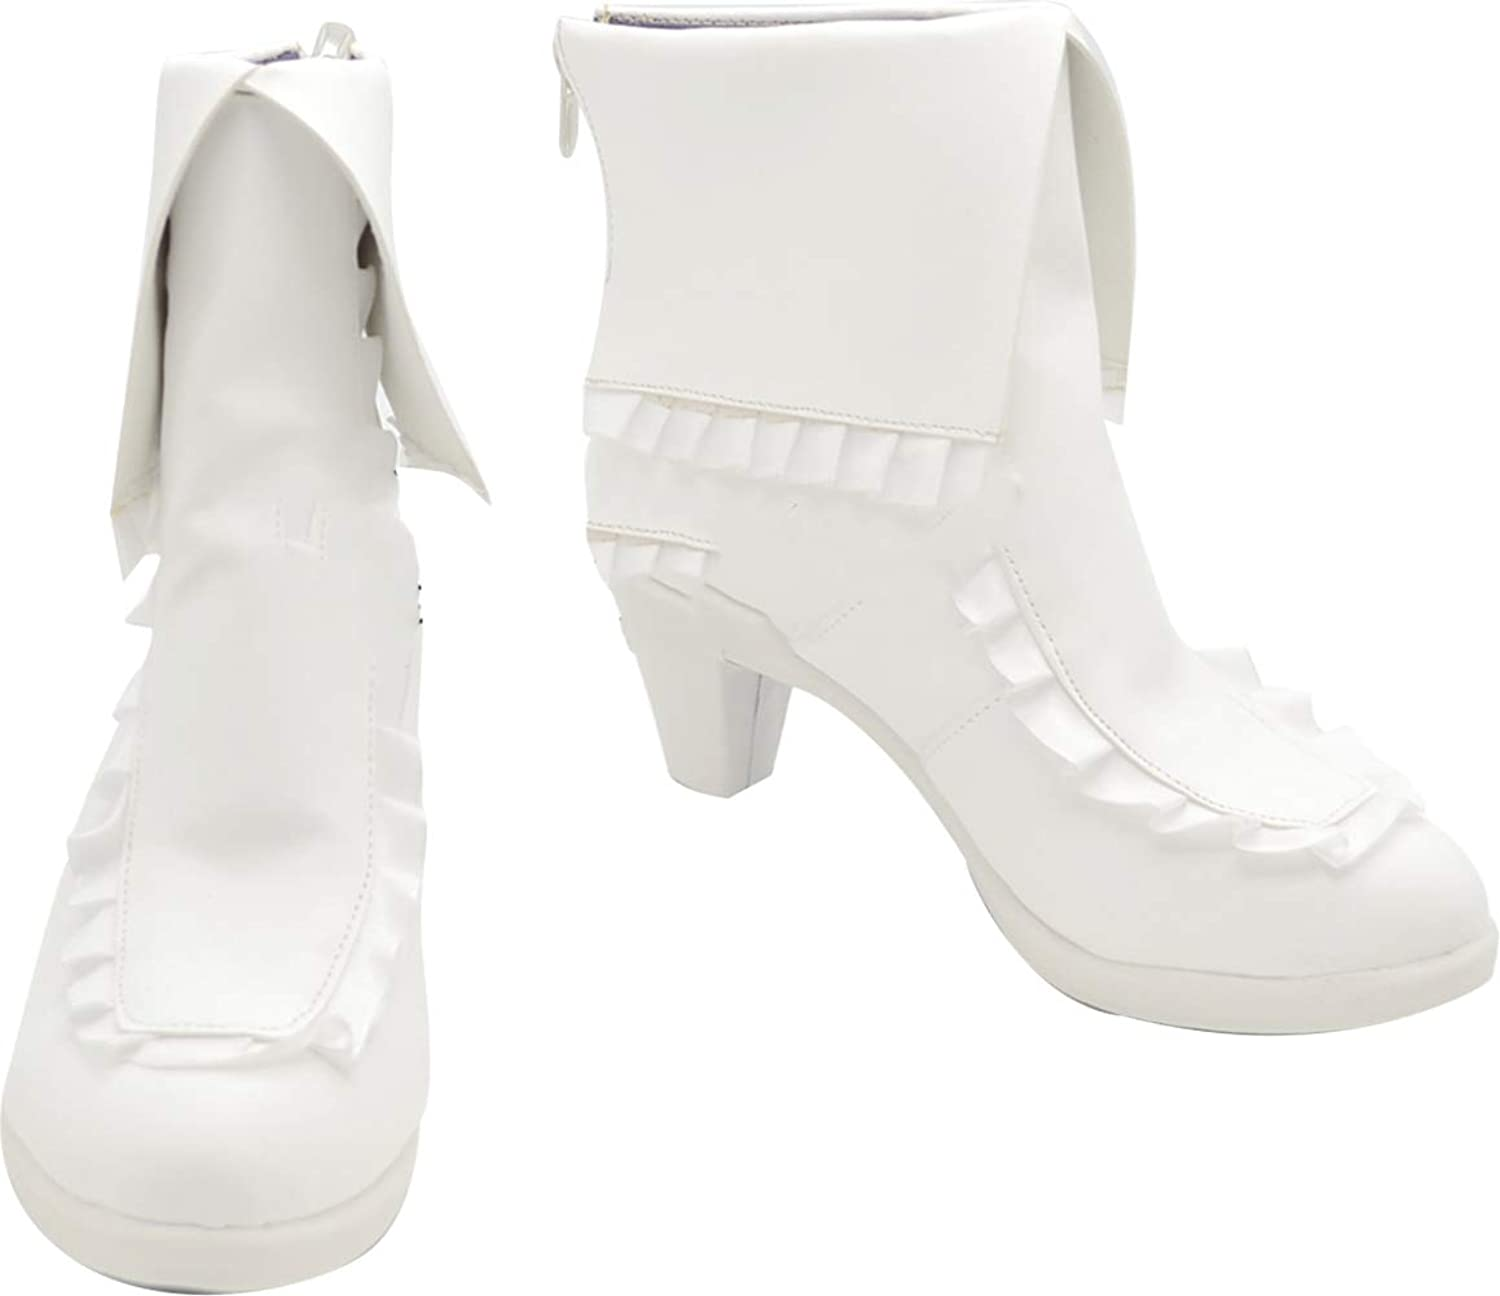 GSFDHDJS Cosplay Boots shoes for VOCALOID MIKU white